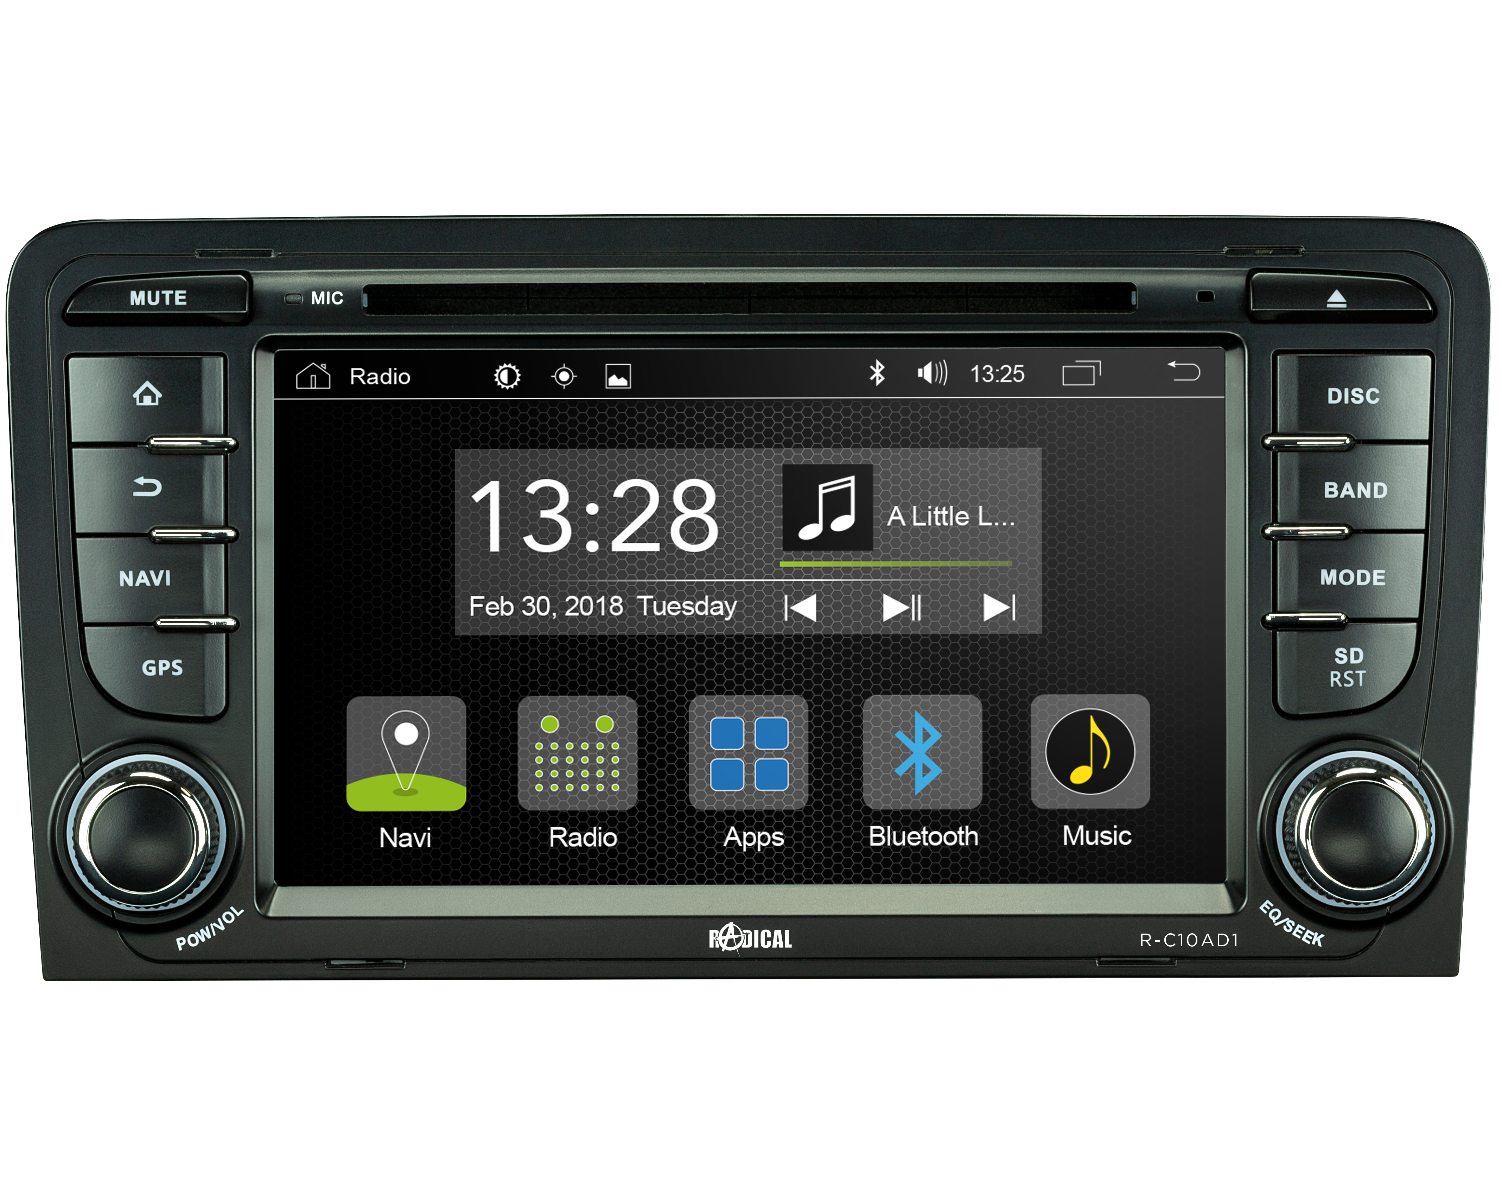 RADICAL R-C10AD1 Audi A3 Infotainment Android T8